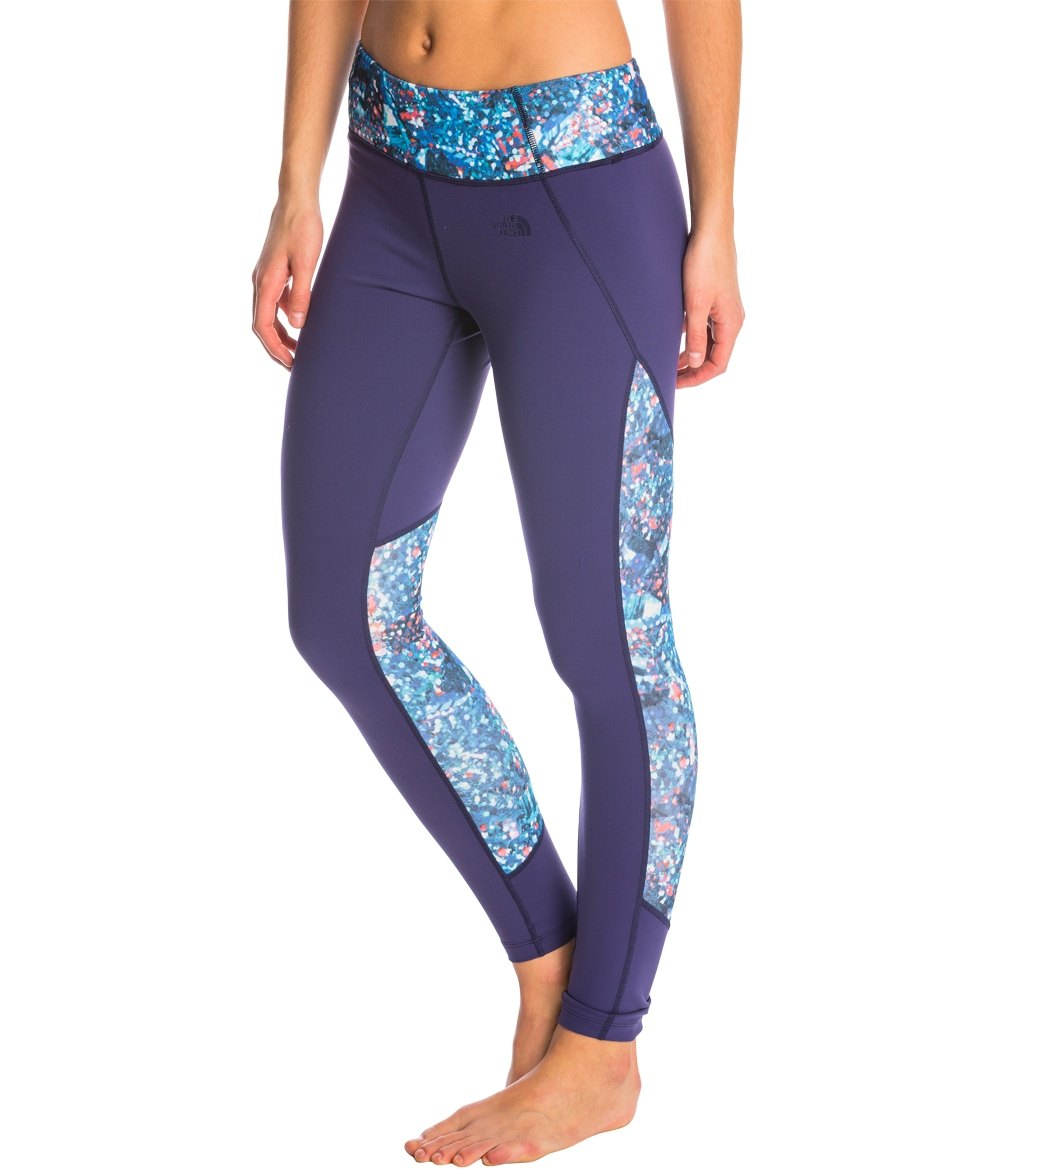 ef4e43ade997f8 The North Face Women's Motivation Color Block Printed Legging at ...